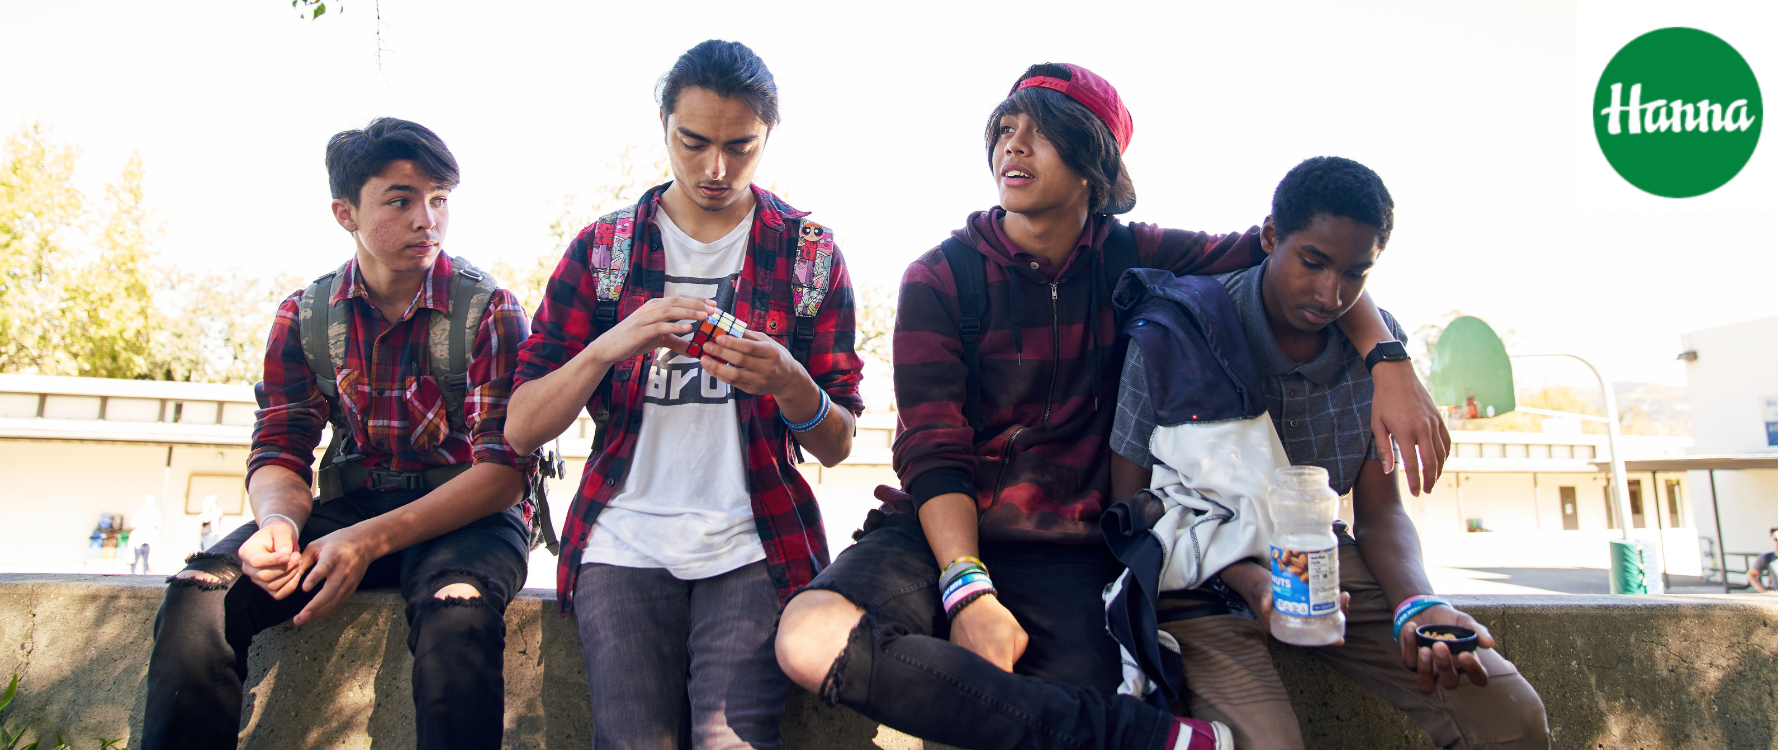 Four young men sitting together in front of campus